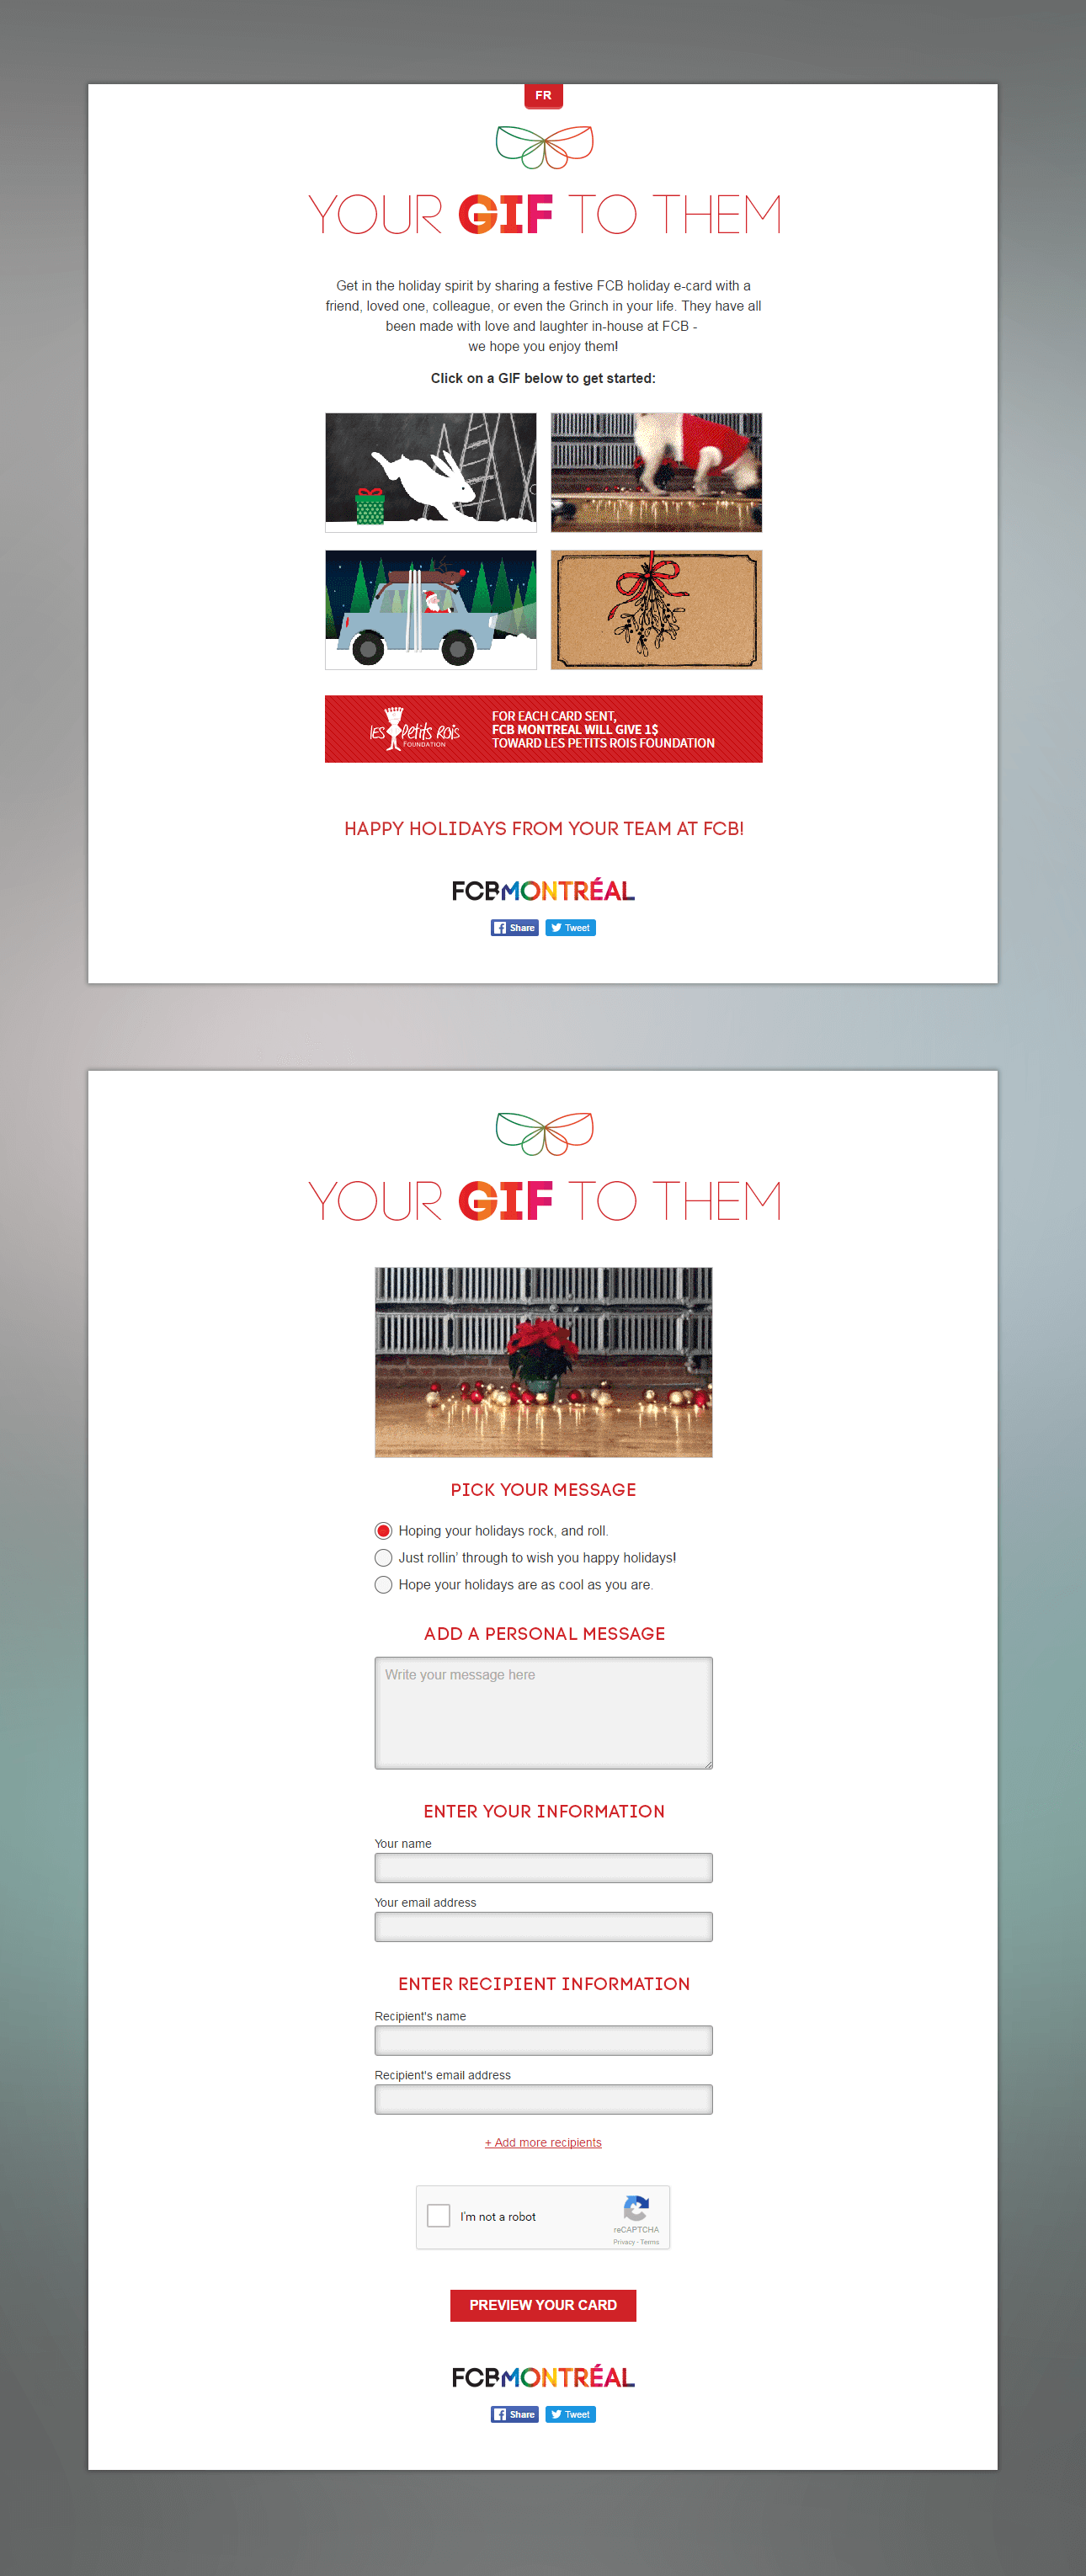 Screen captures of FCB's Your GIF to them Christmas Cards.